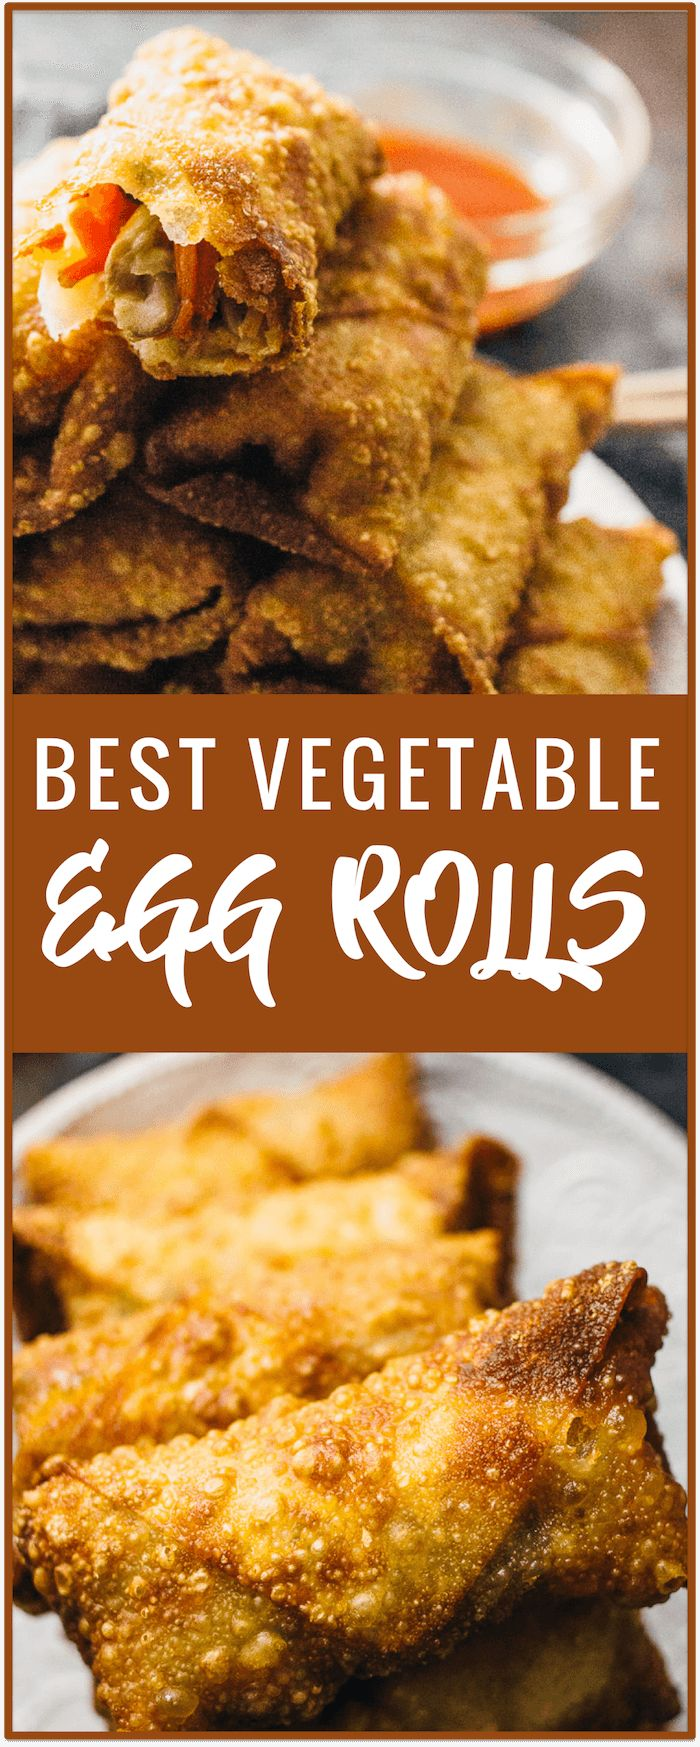 Best Vegetable Egg Rolls These Vegetable Egg Rolls Are Ridiculously Crunchy And Taste Better Than